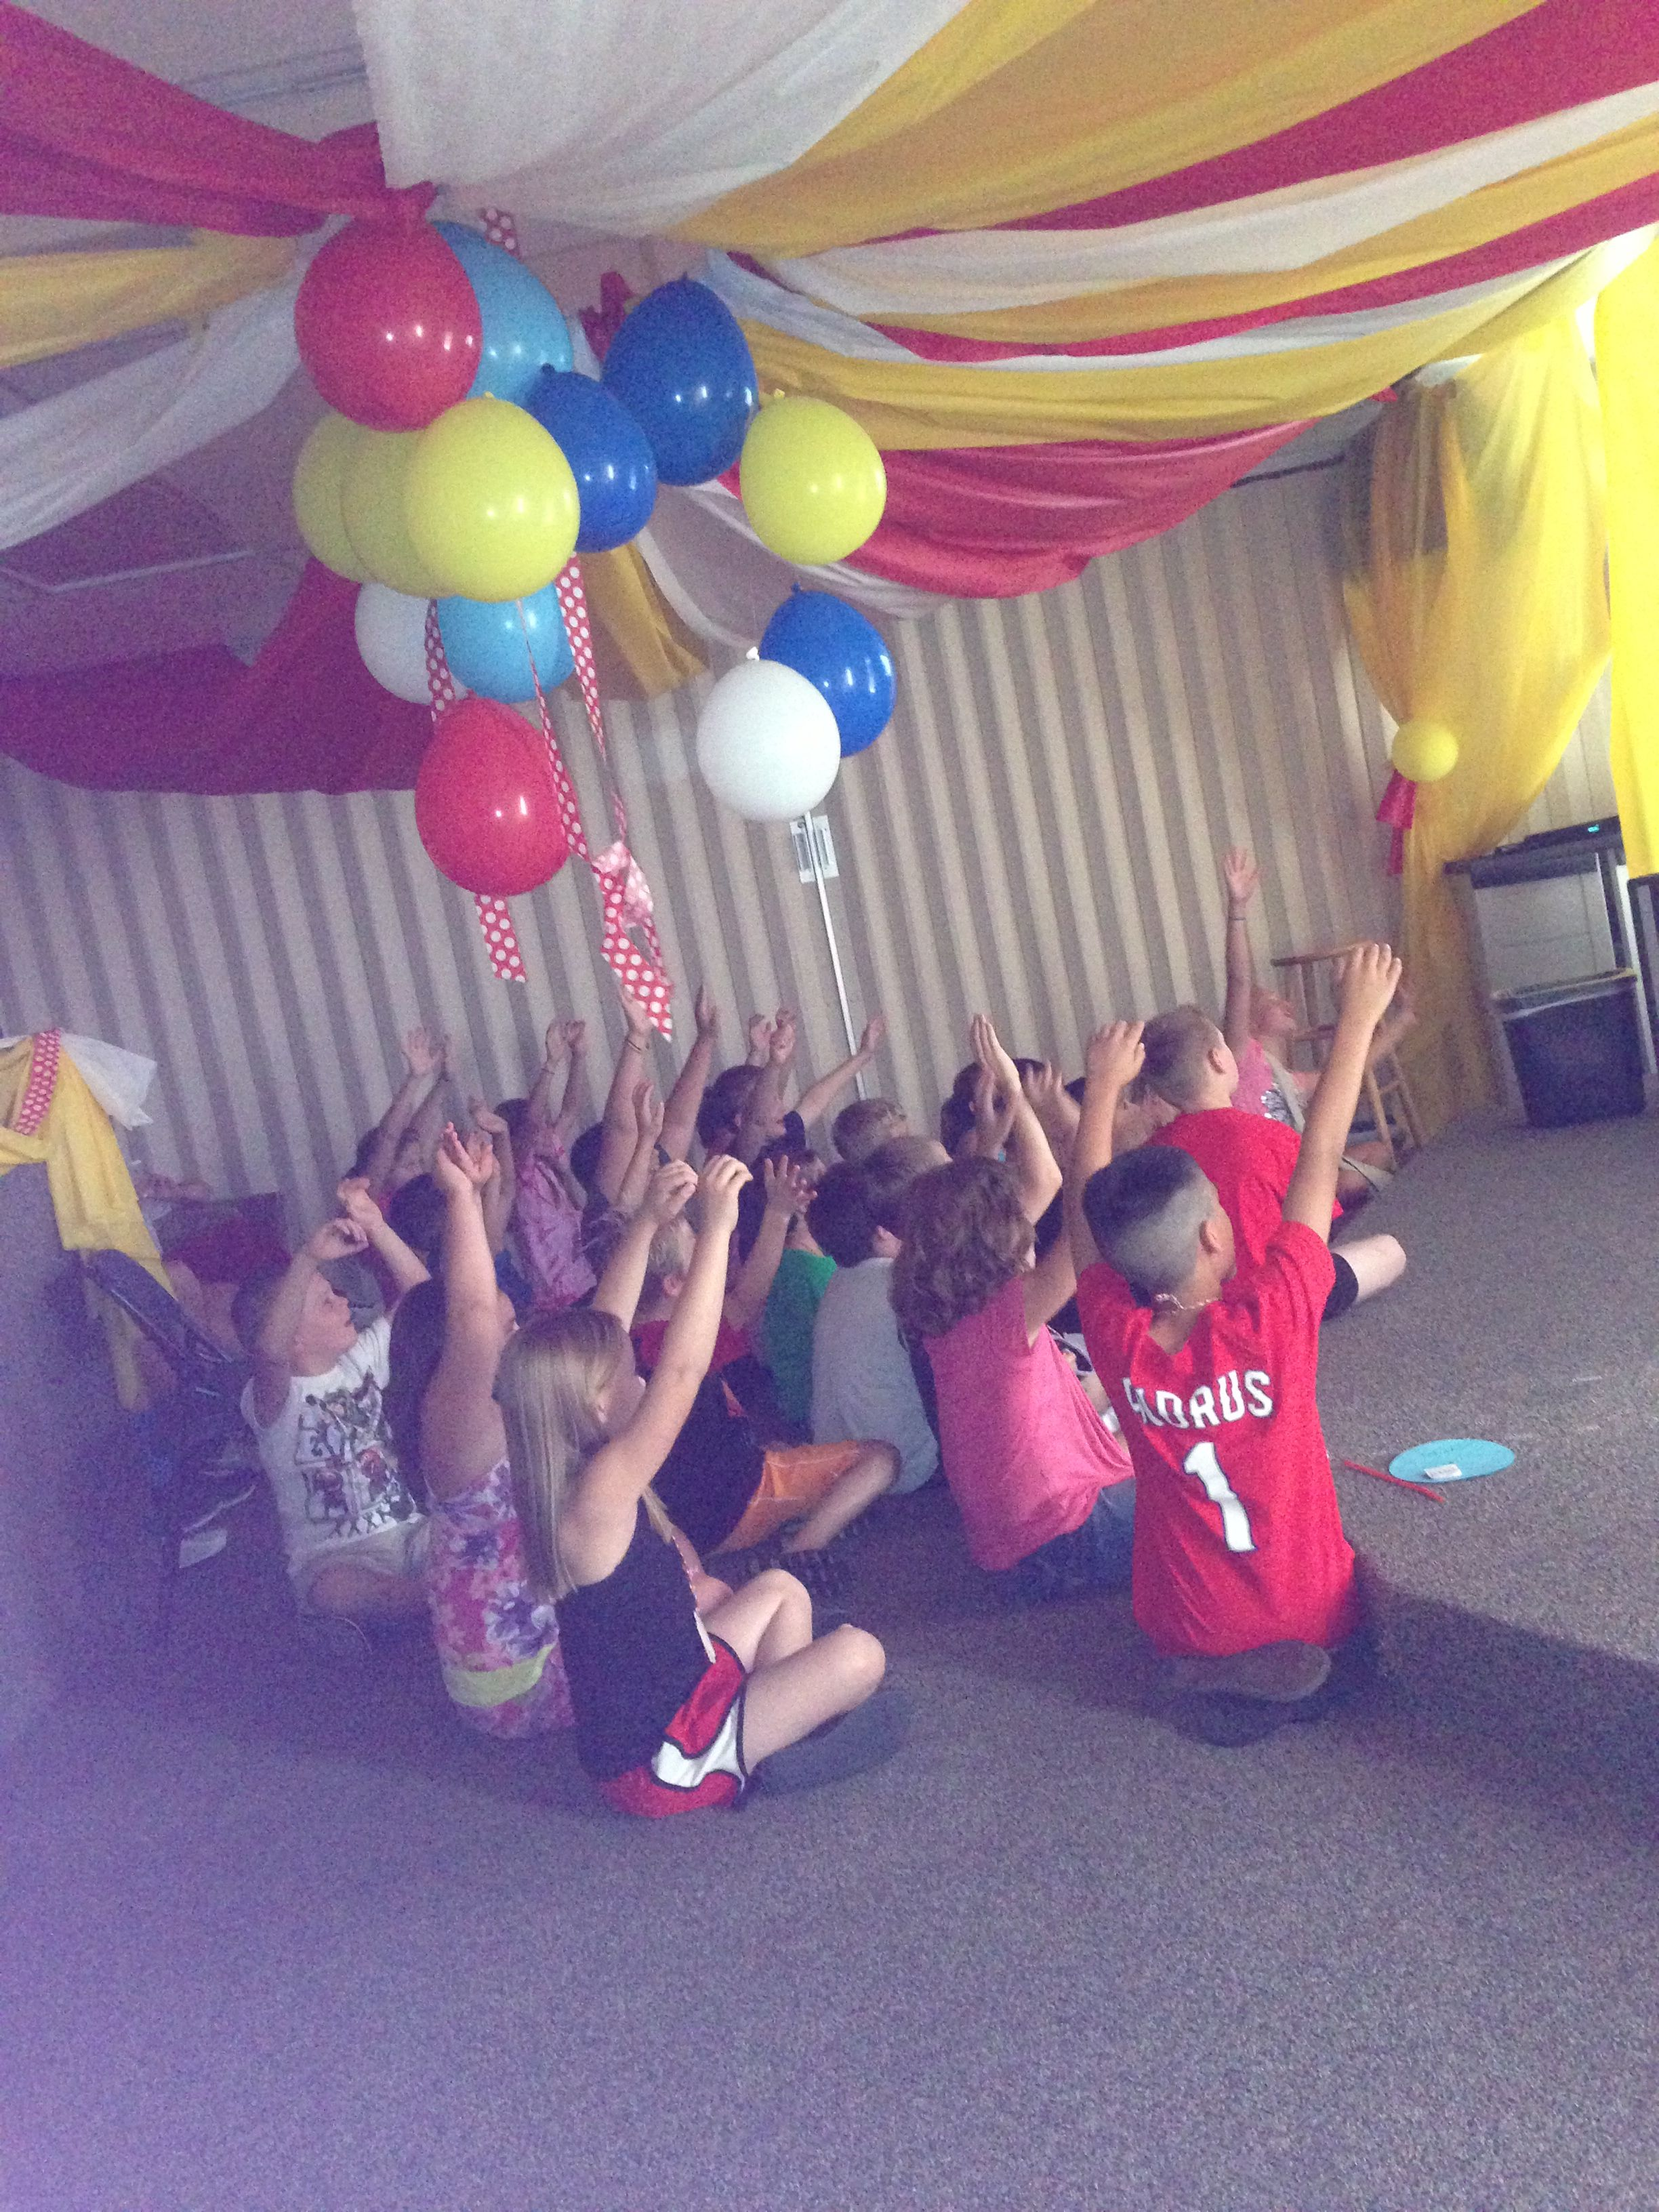 rocking the 2013 vbs theme  balloons and plastic